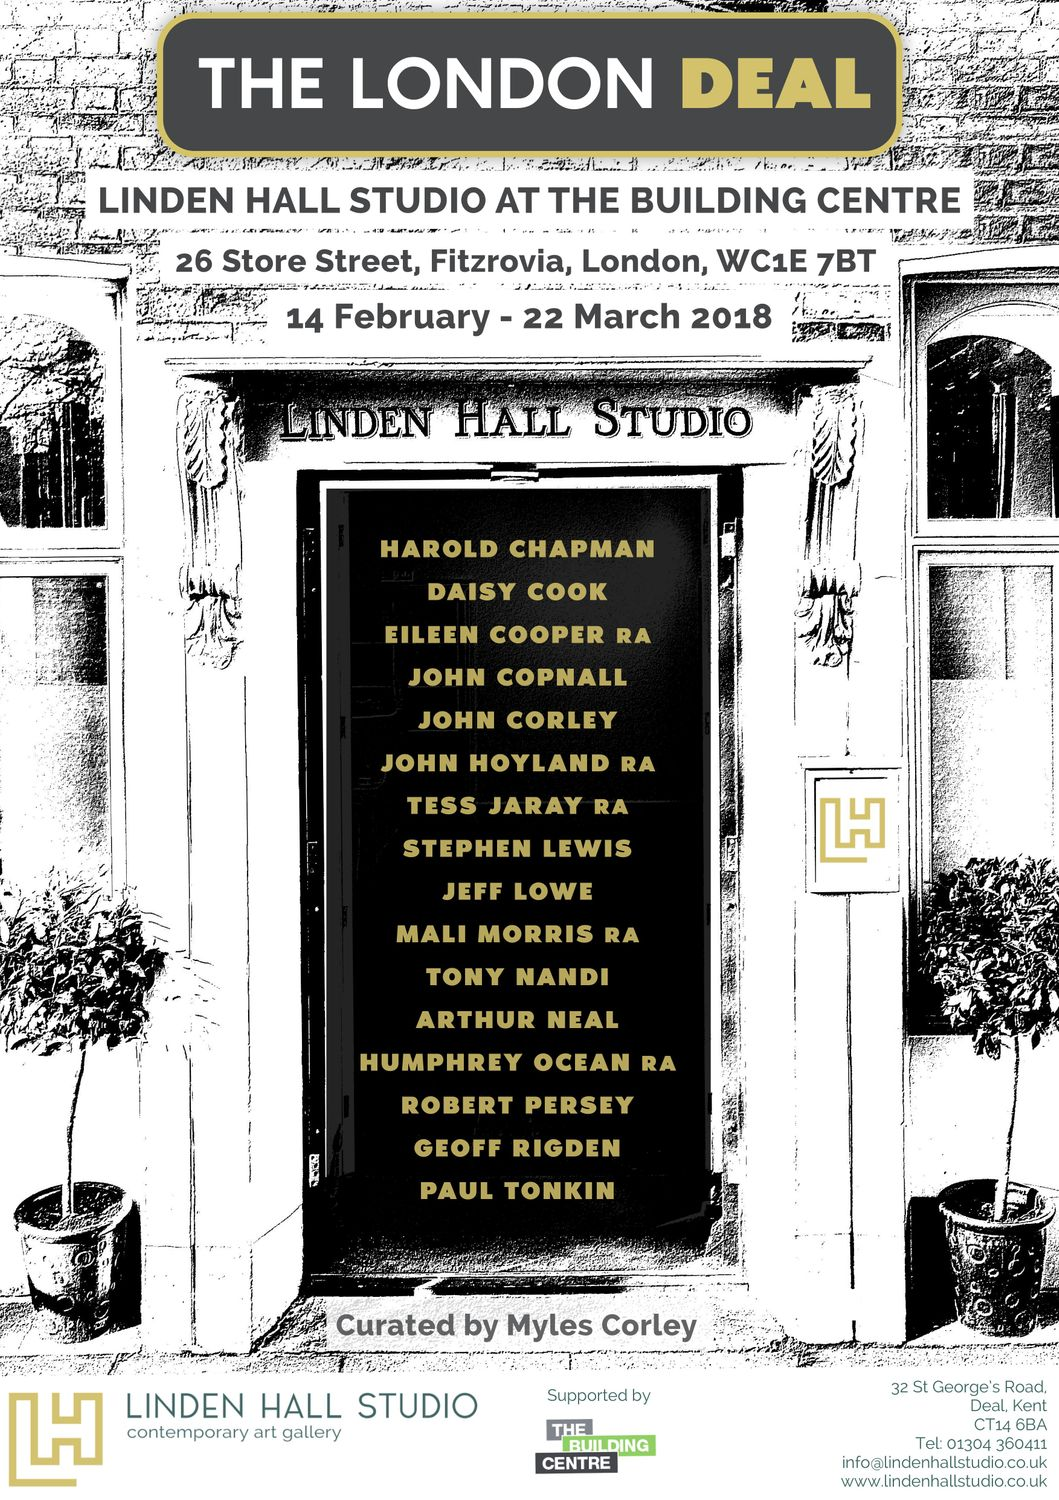 Art Events Calendar London : The london deal exhibition at linden hall studio in